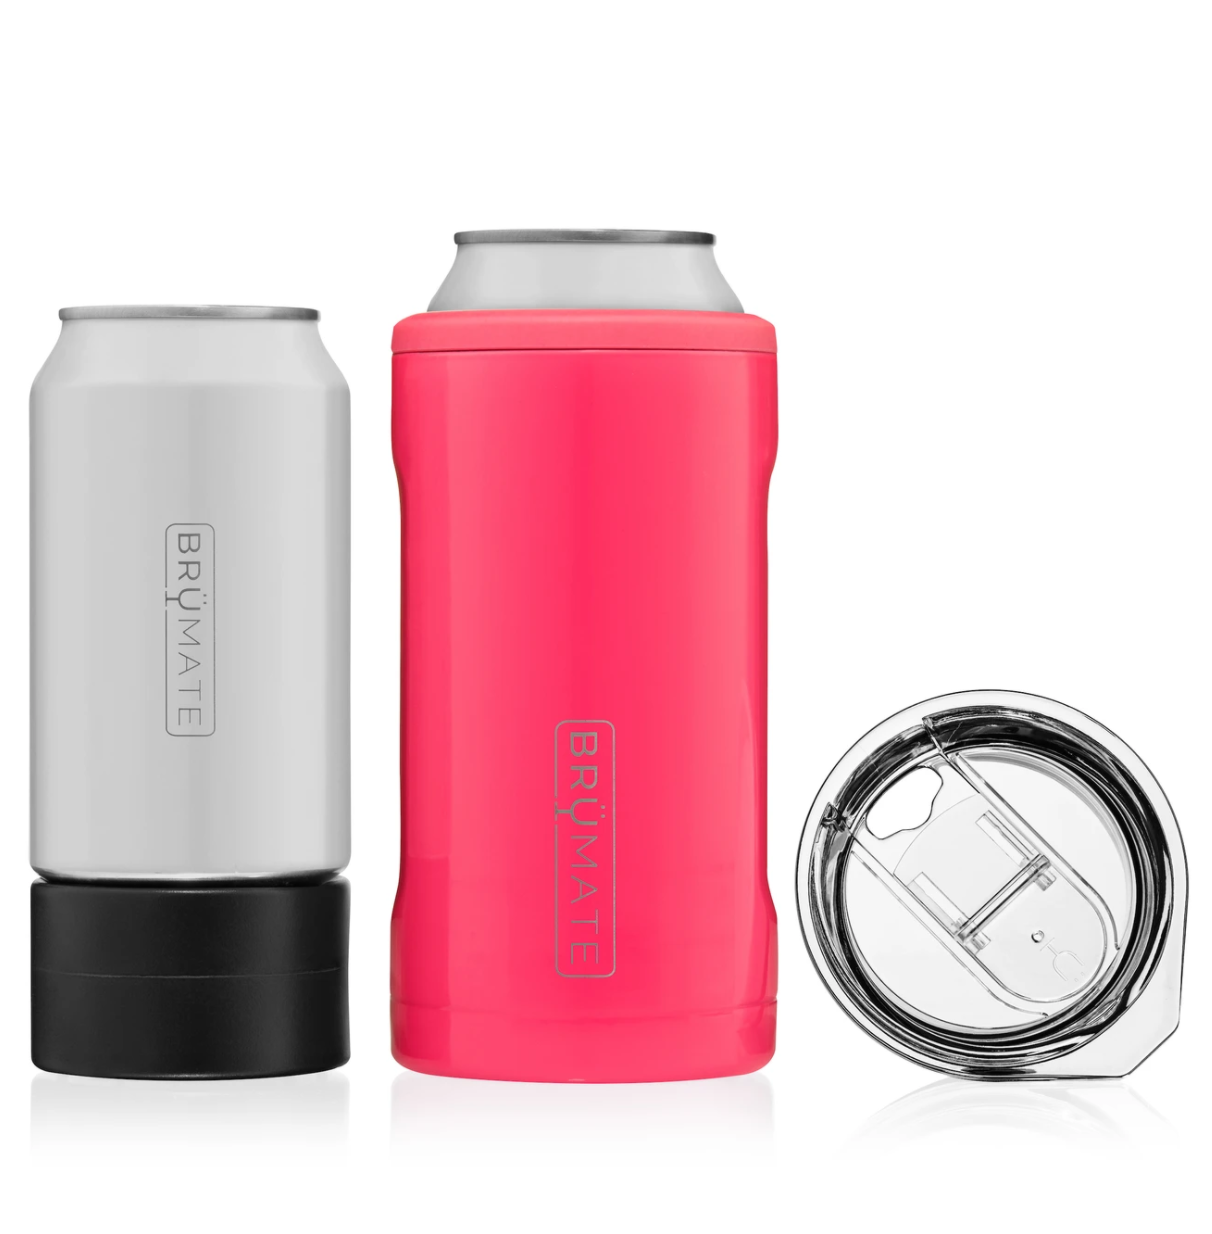 Hopsulator TRiO 3-in-1 can-cooler | Neon Pink